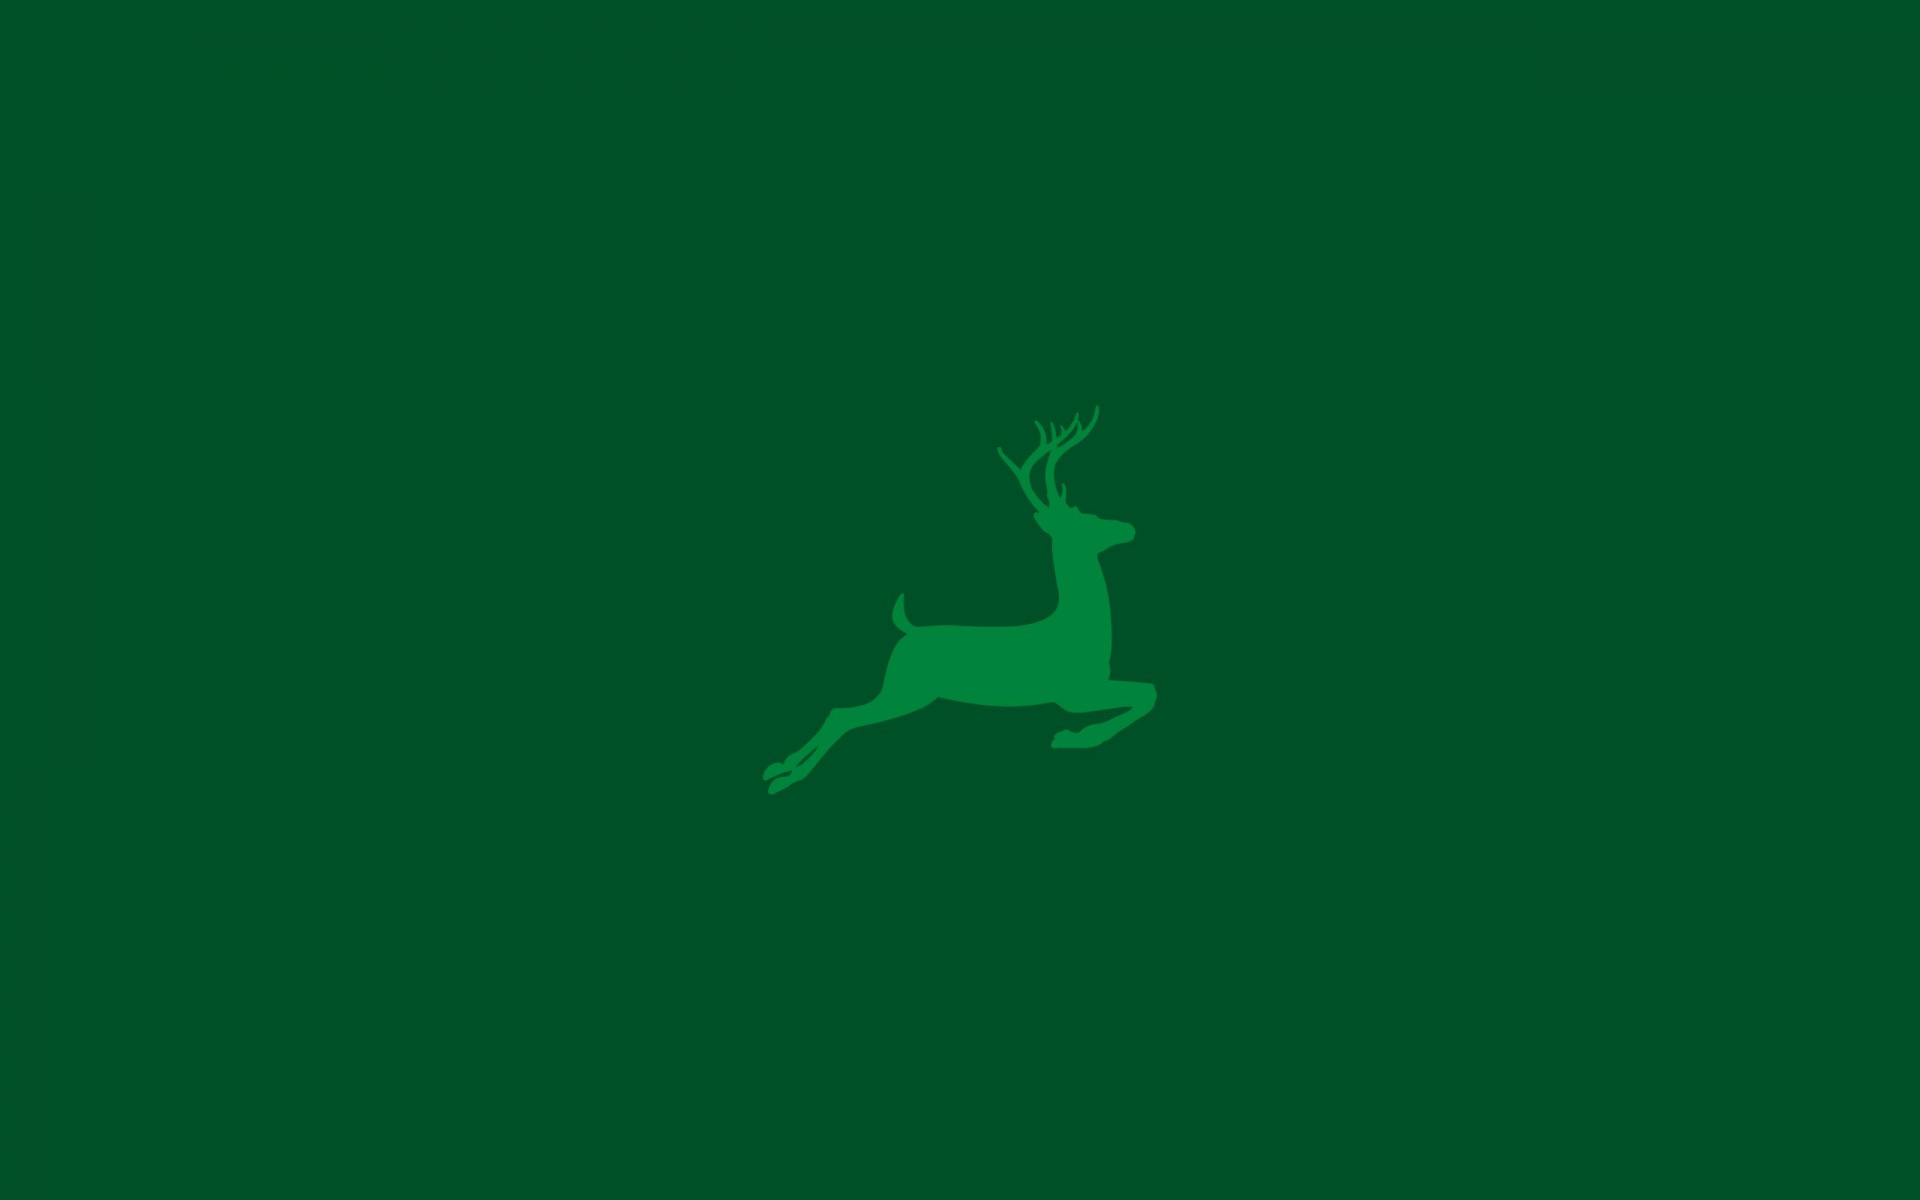 contemporary green christmas background wallpaper - photo #12